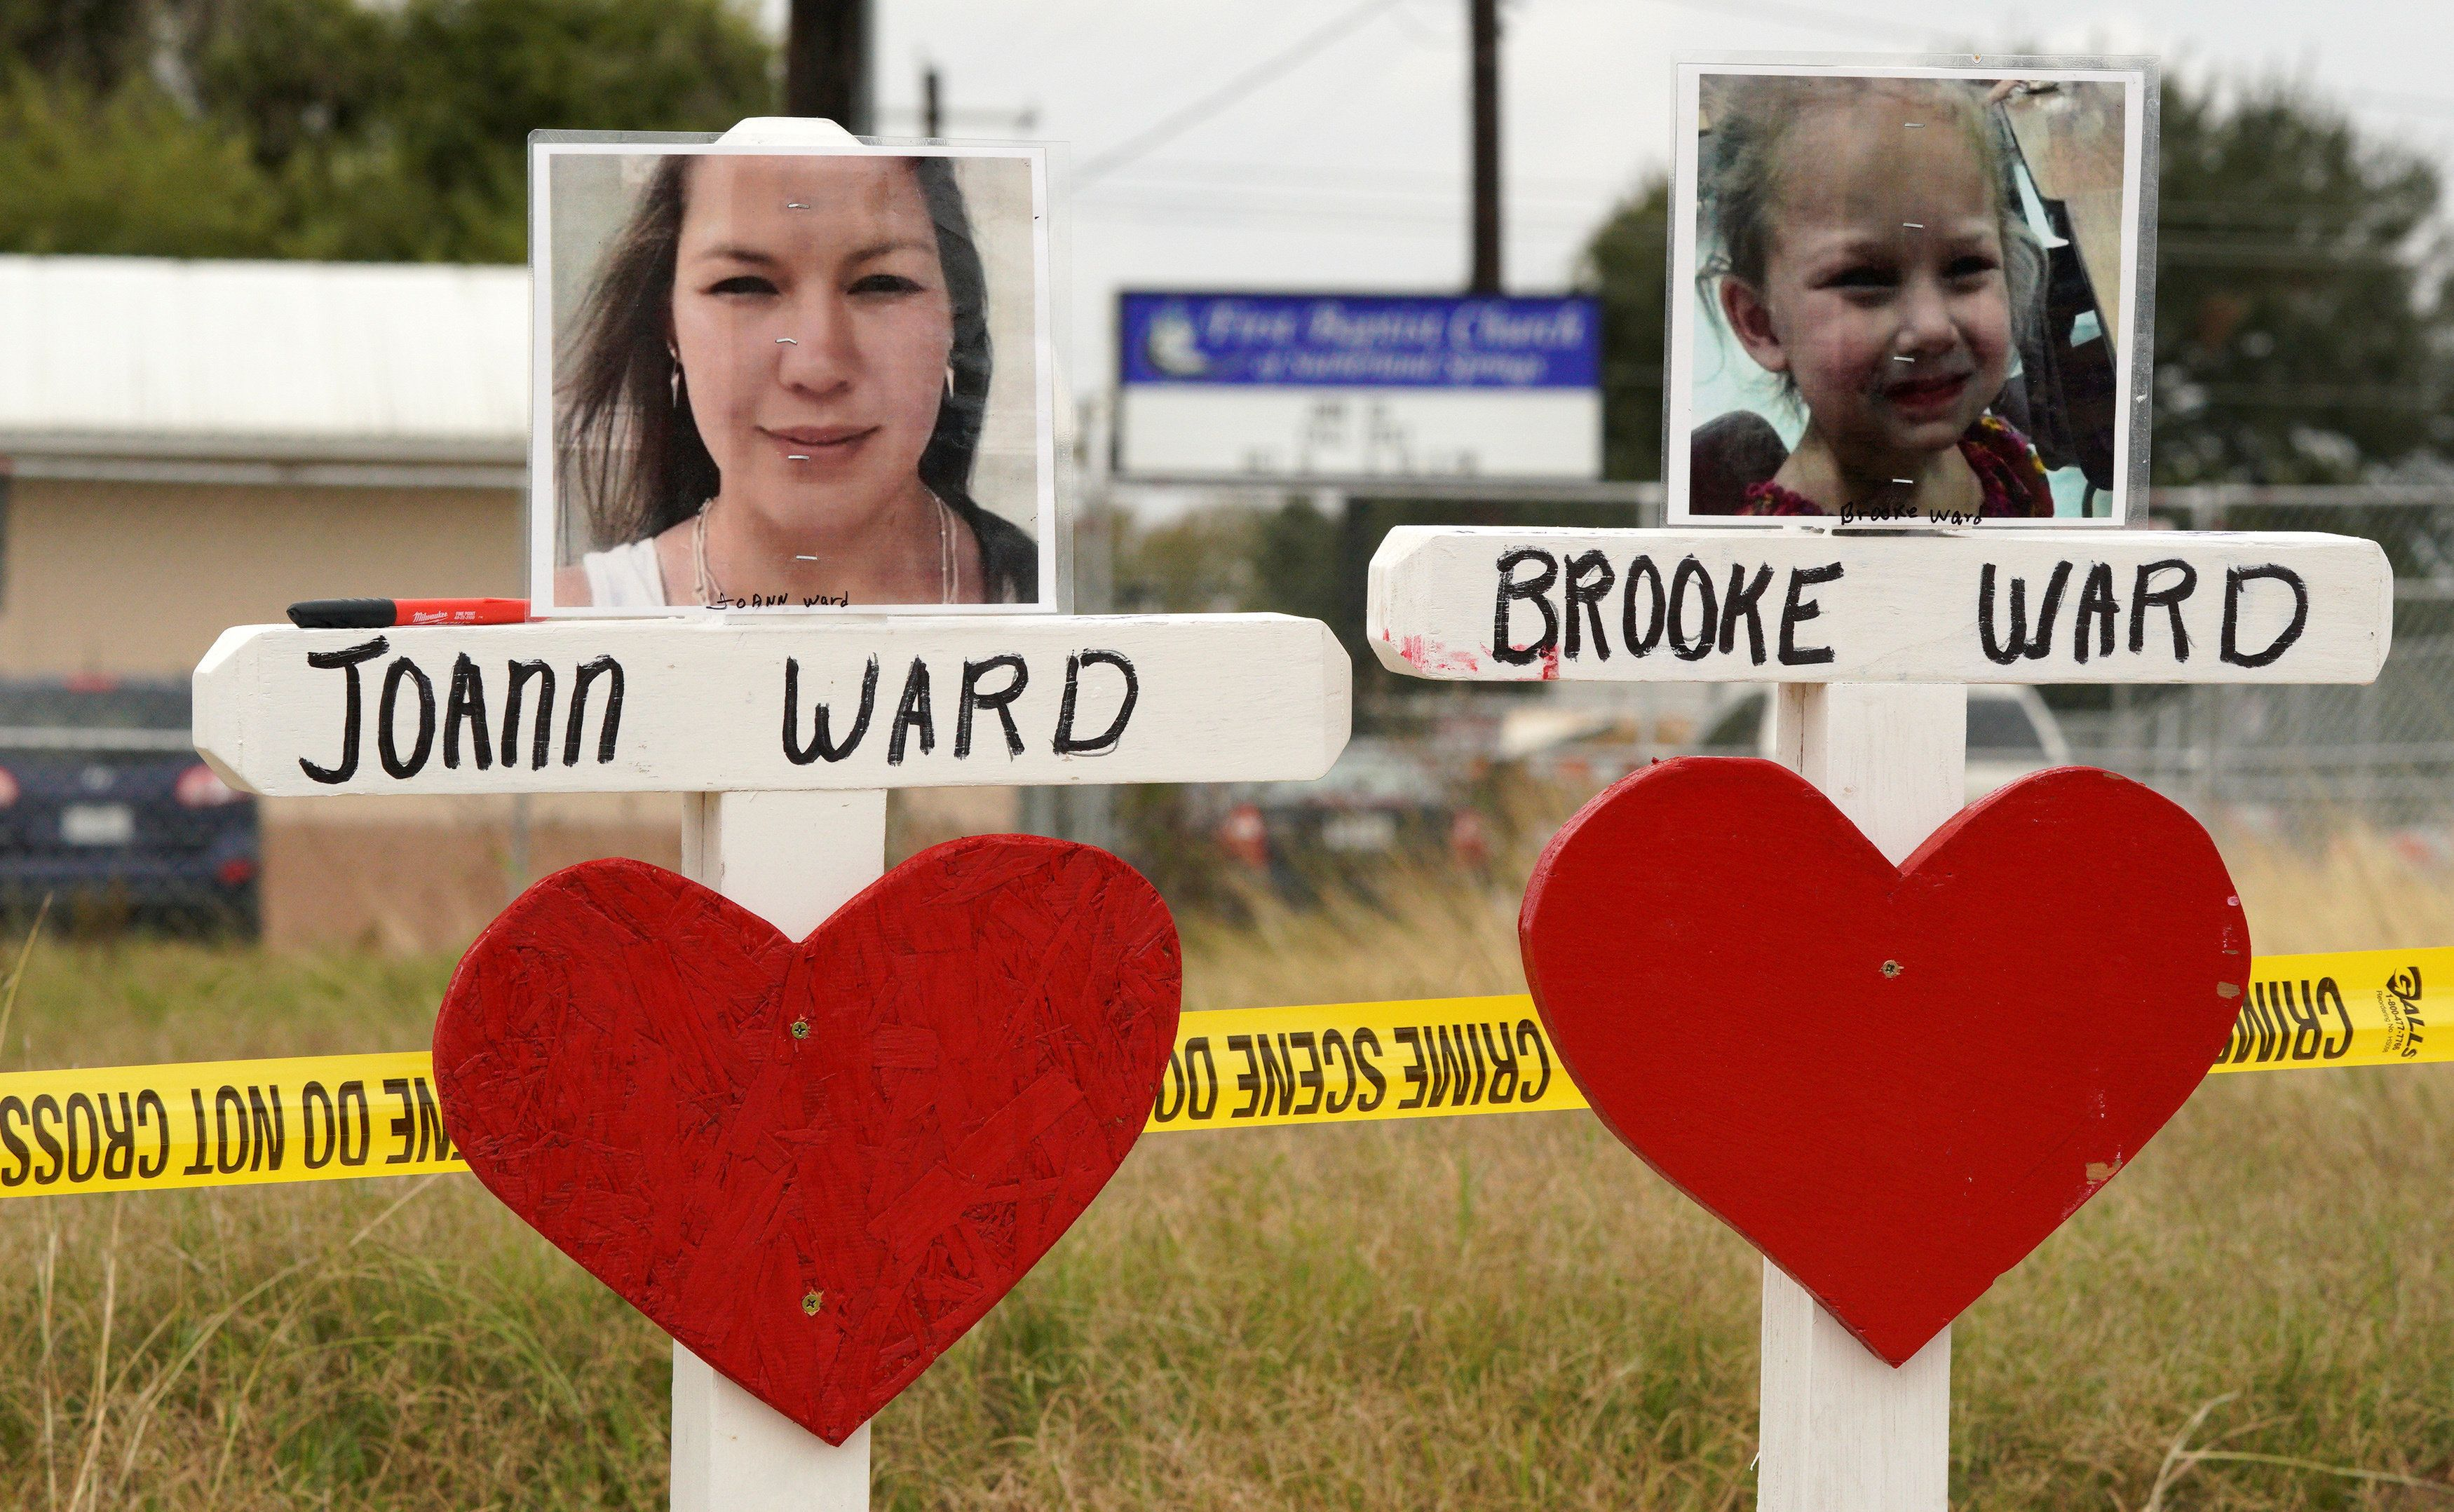 Crosses in remembrance of Joann Ward and Brooke Ward killed in the shooting at the First Baptist Church of Sutherland Springs, Texas, U.S., November 9, 2017.  REUTERS/Rick Wilking